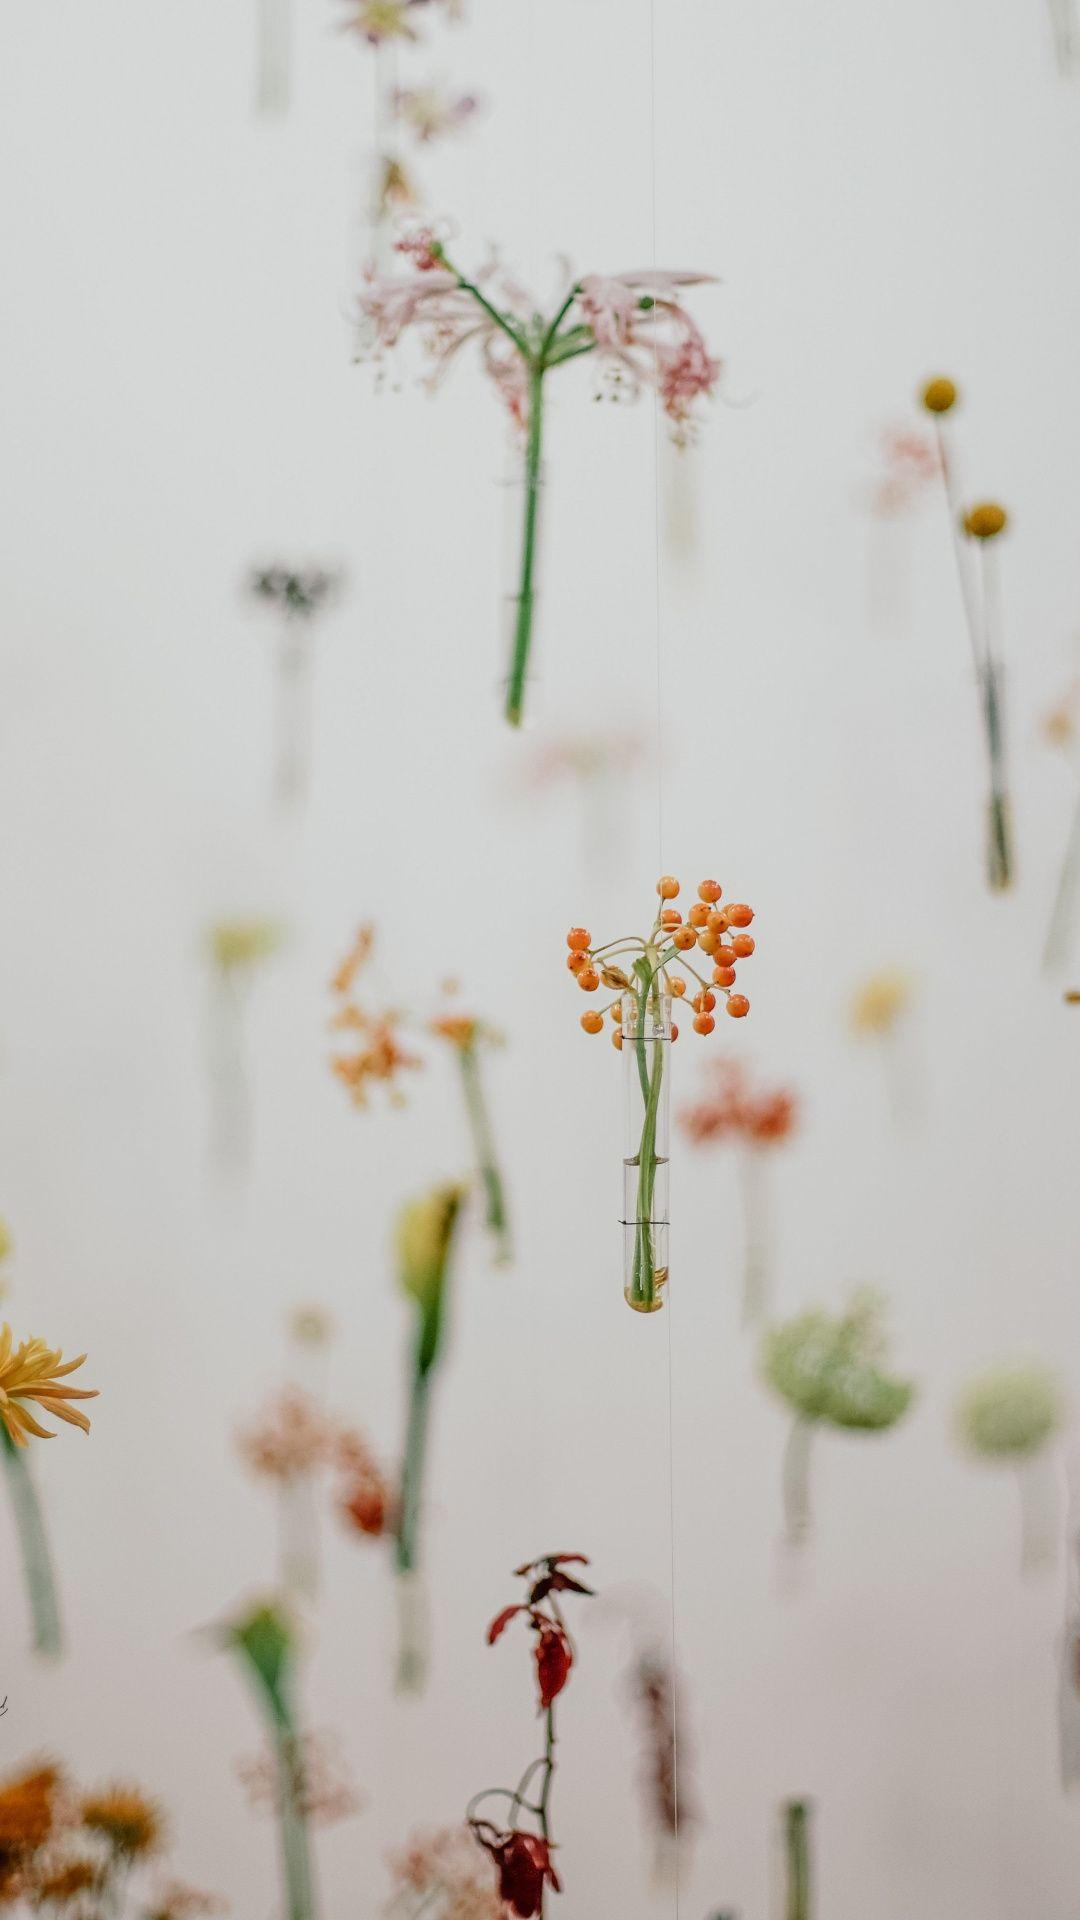 Minimal, hanging, flowers, 1080x1920 wallpapers